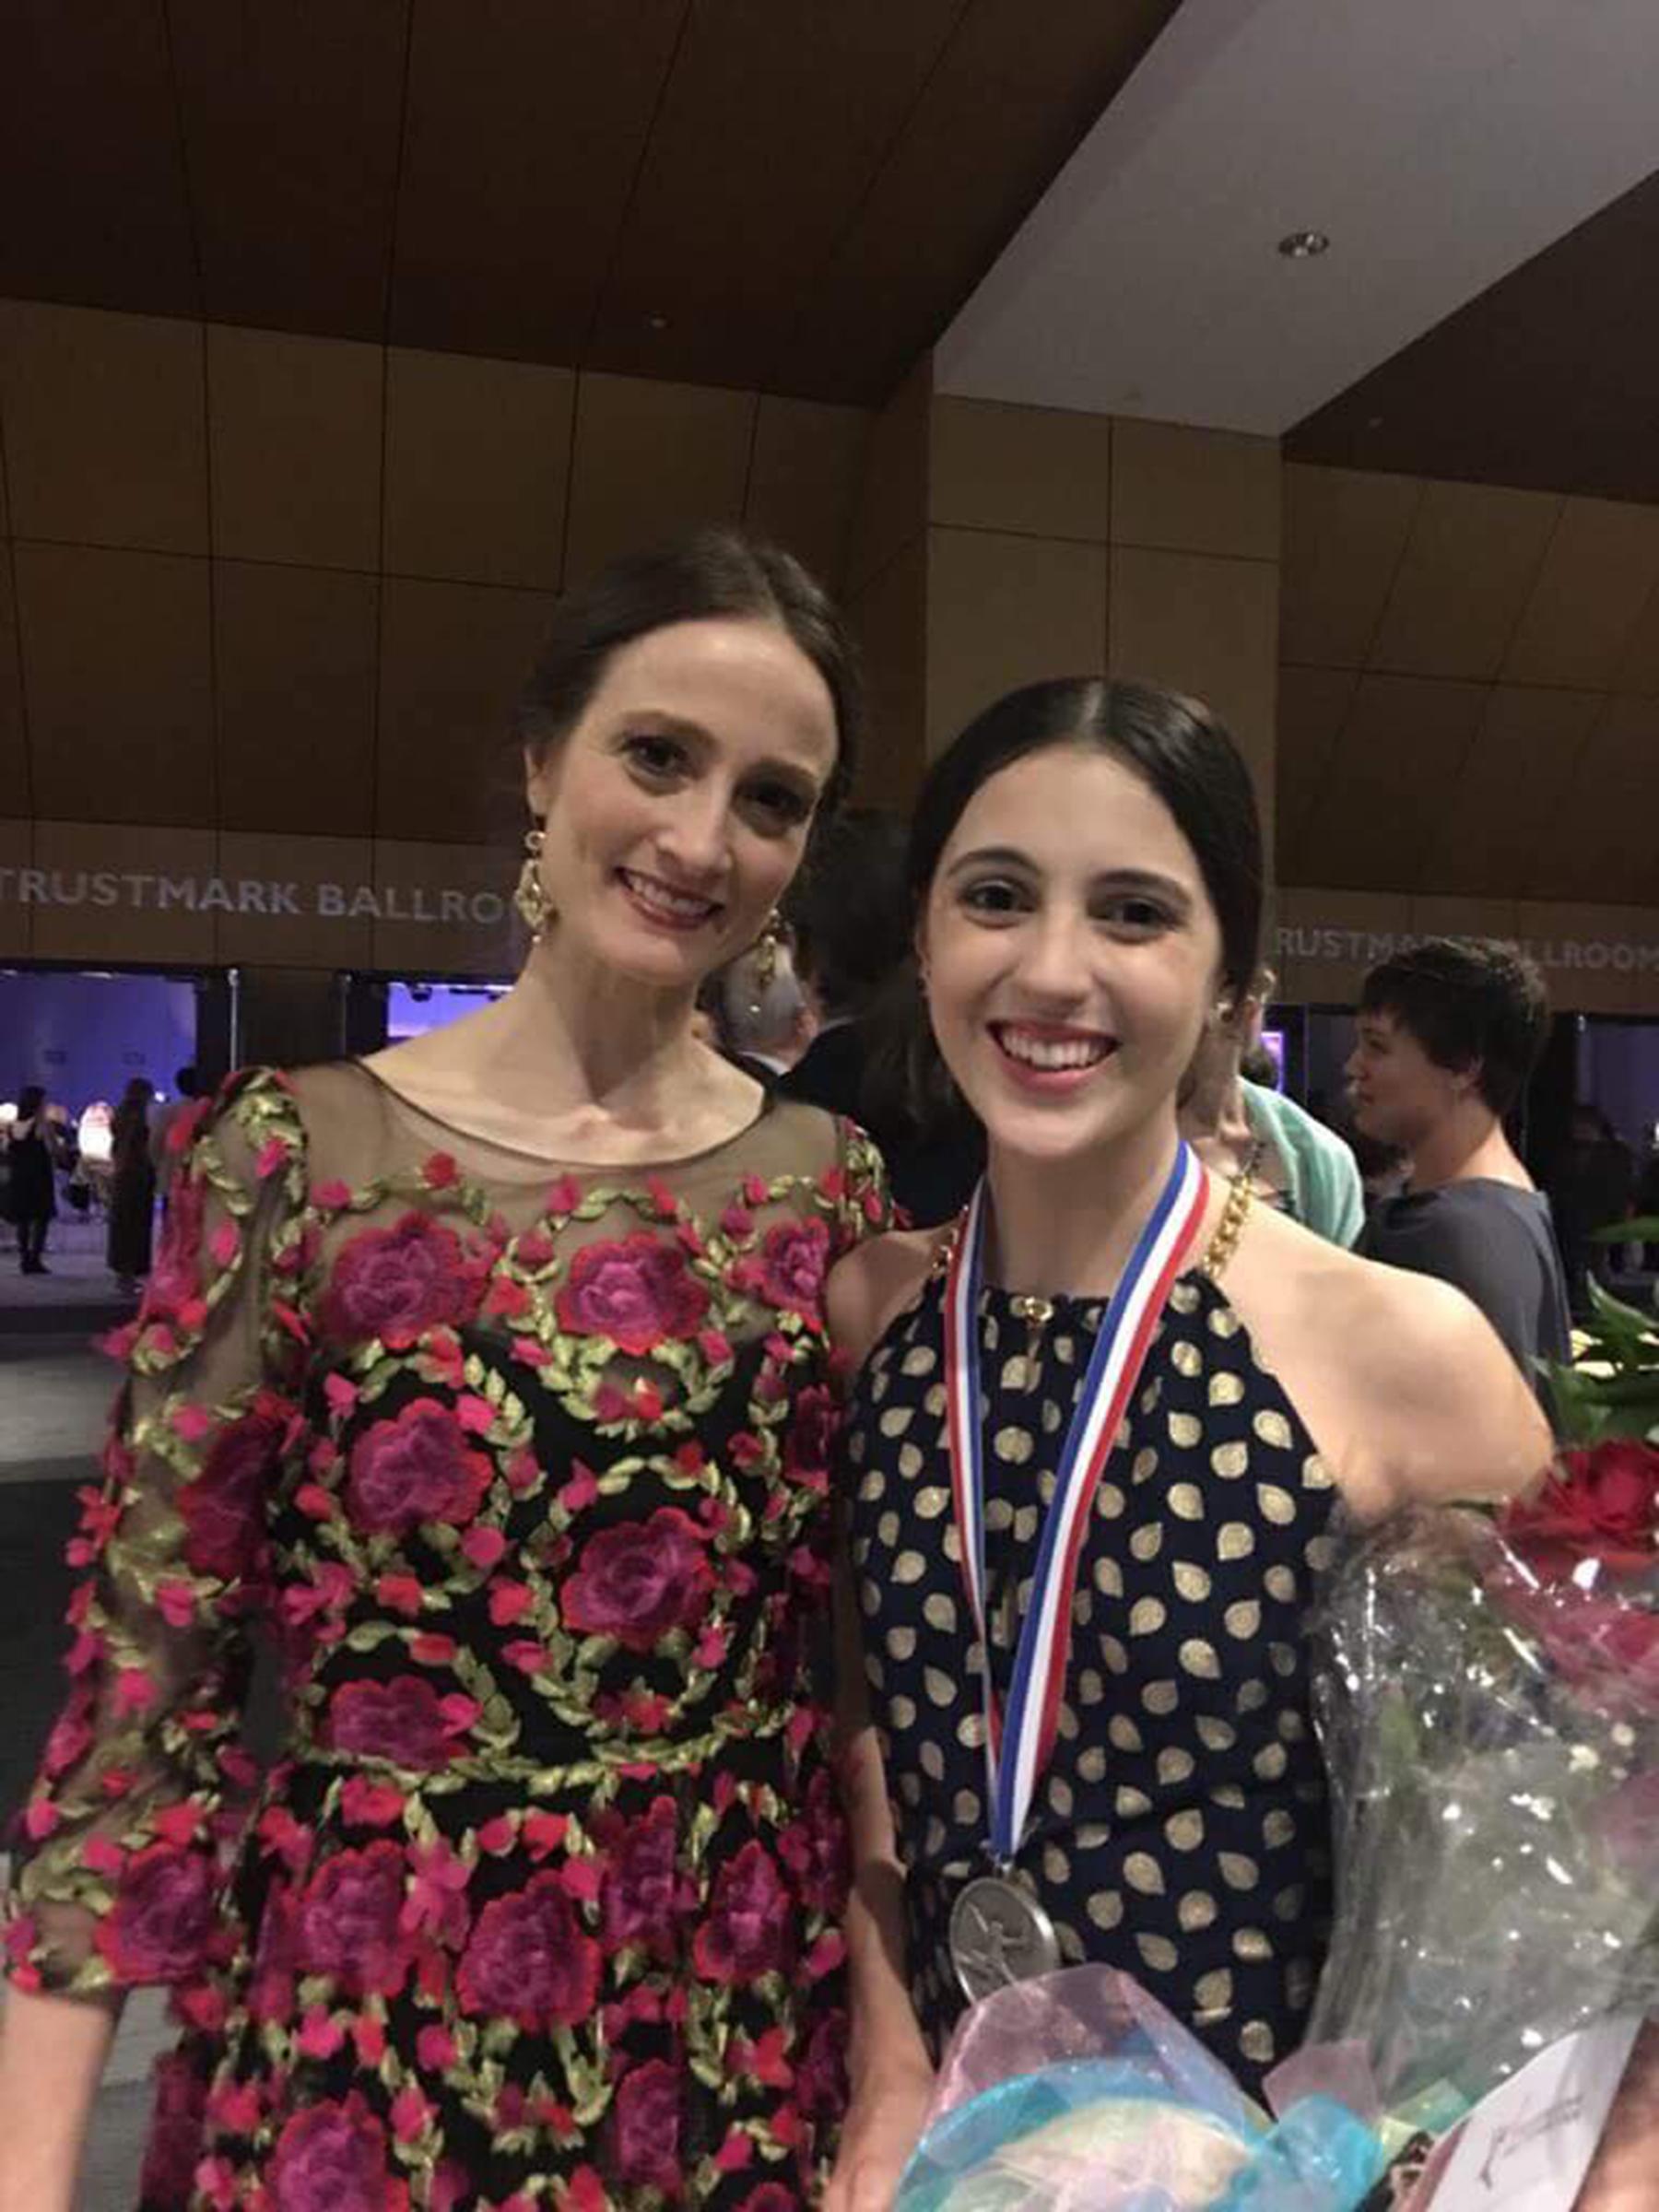 For Katherine, one of the highs of joining competitions is meeting her idols, including Washington Ballet artistic director Julie Kent who congratulated her in Jackson.